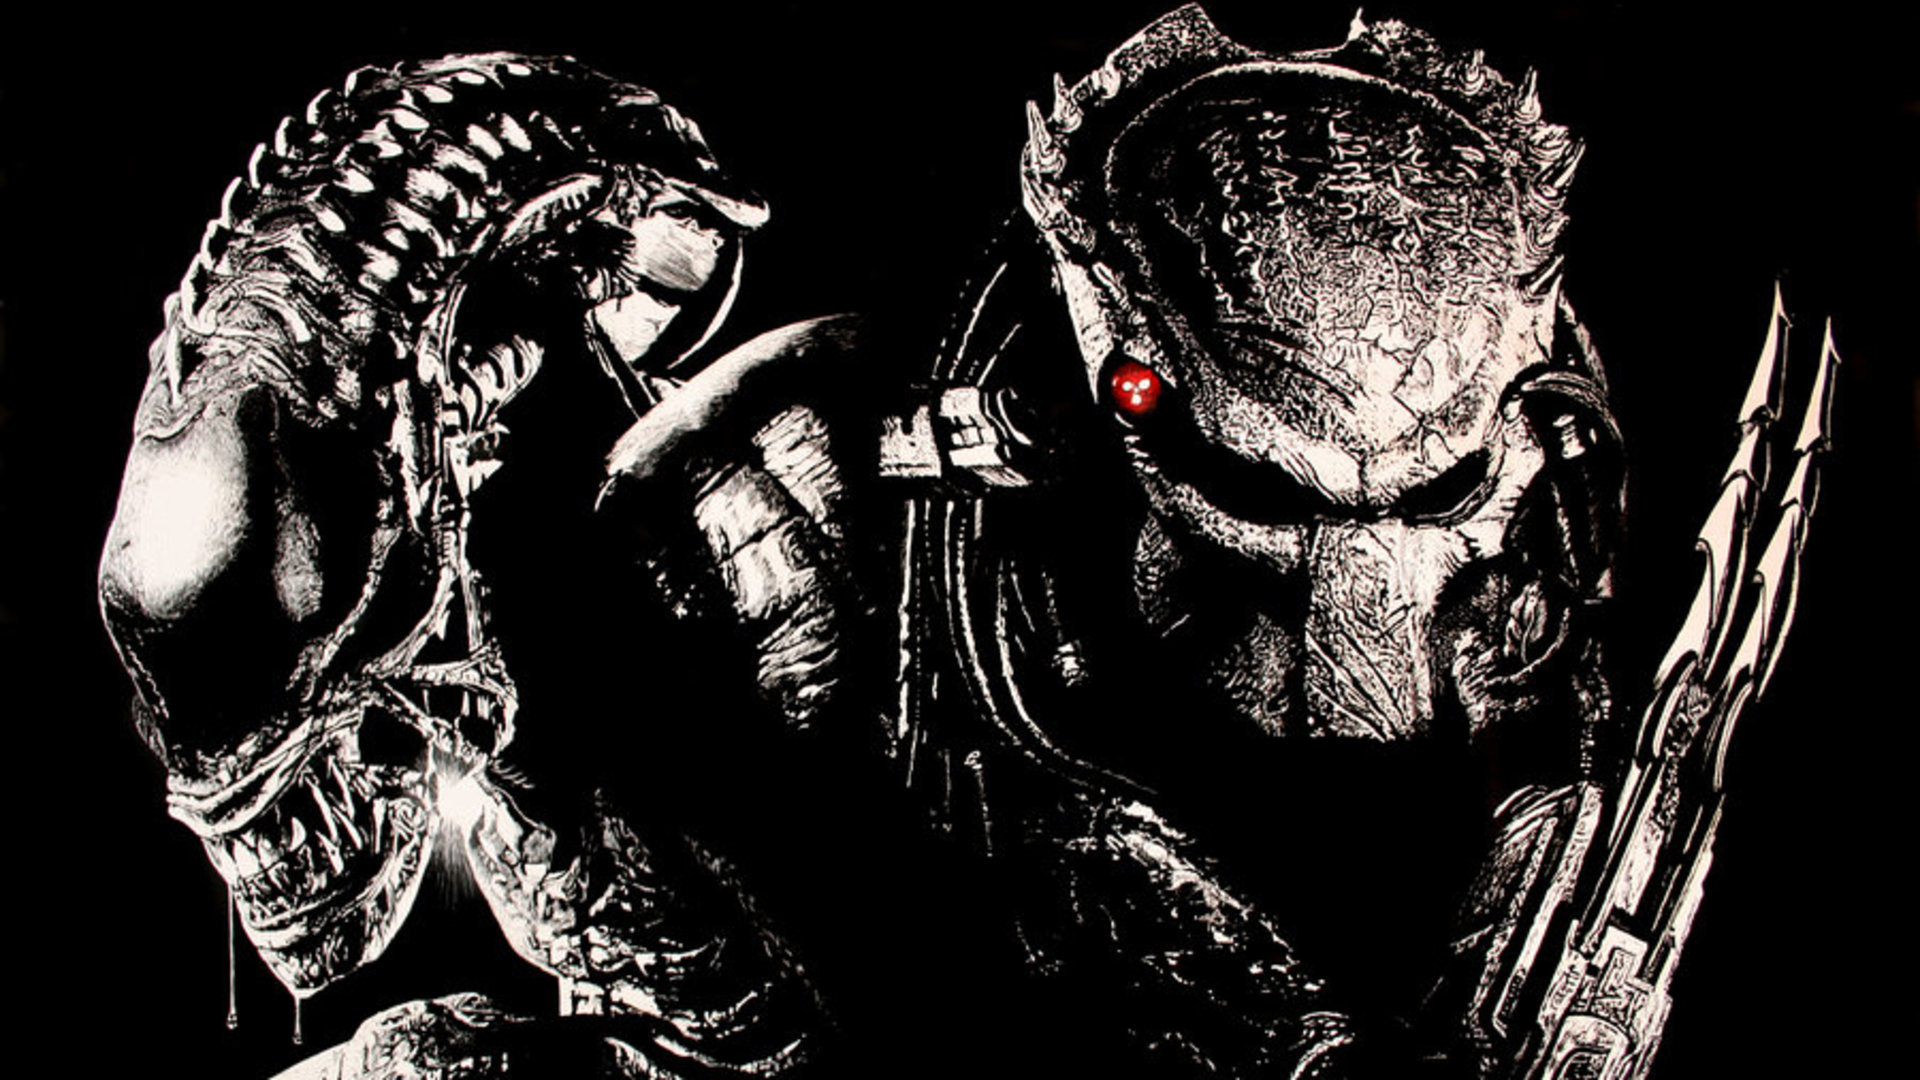 Alien Vs Predator Wallpaper Hd HD Wallpaper  Background ID